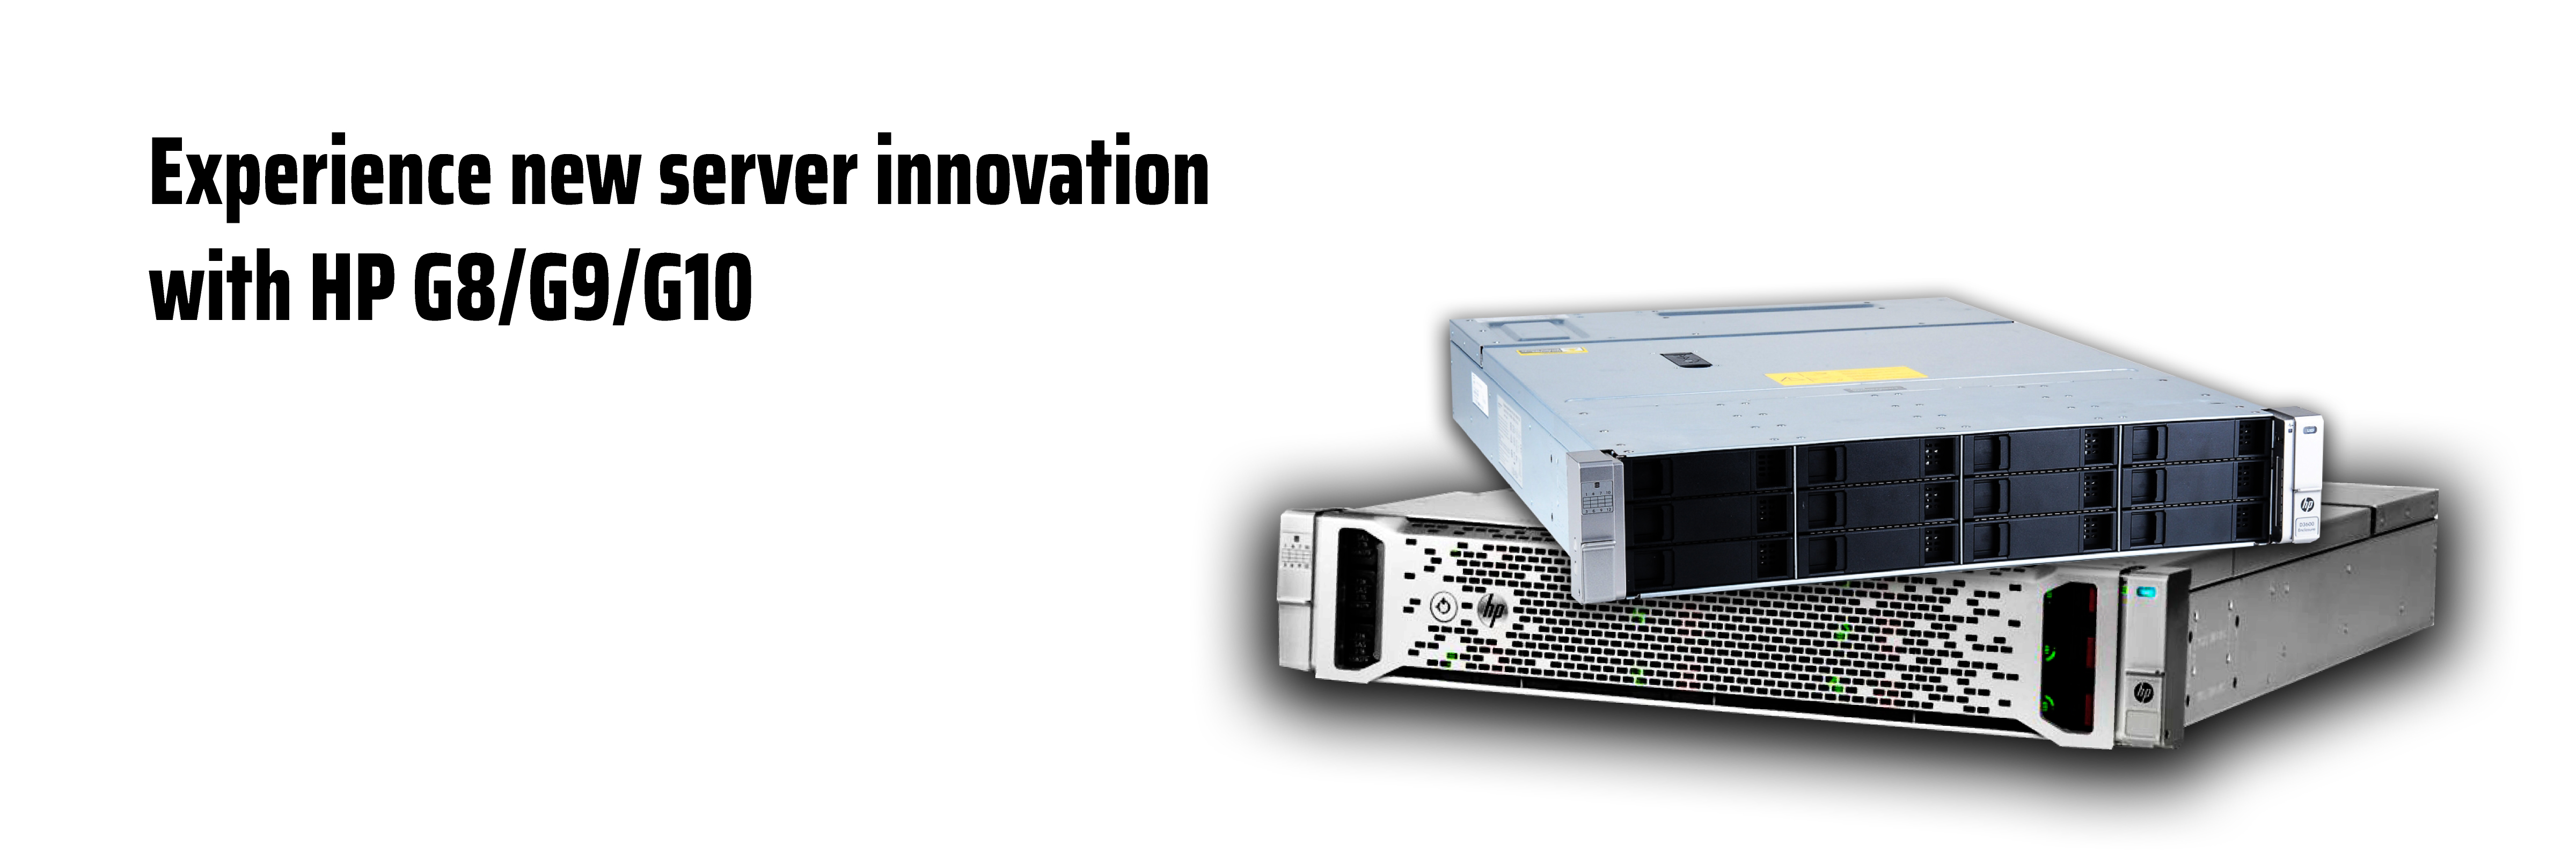 Experience new server innovation with HP G8/G9/G10